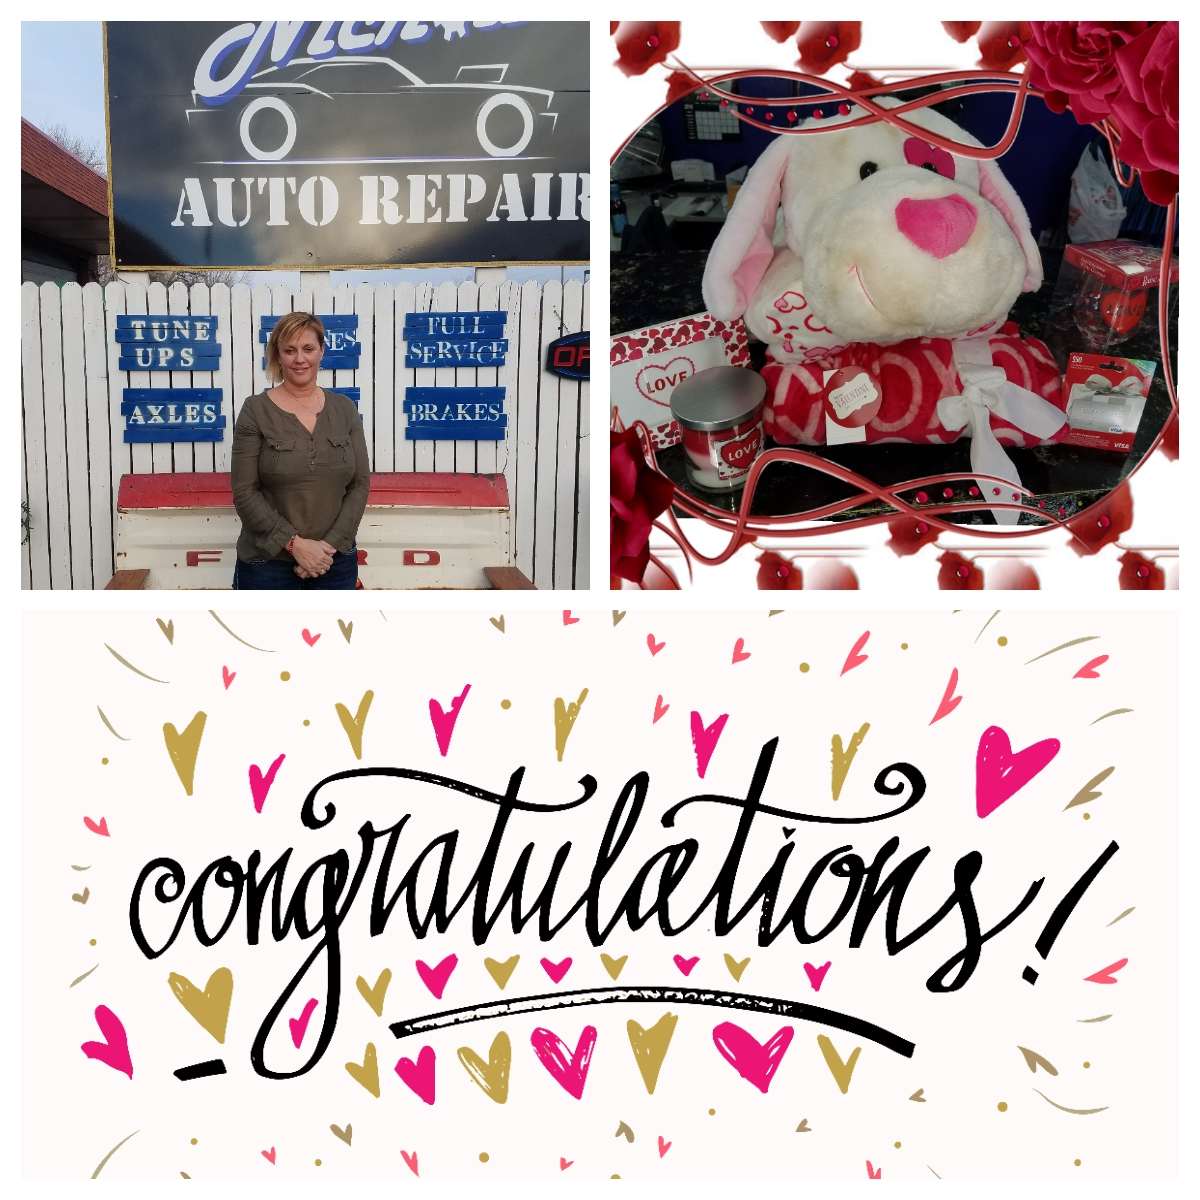 Auto Repair Shop Valentines Day Winner